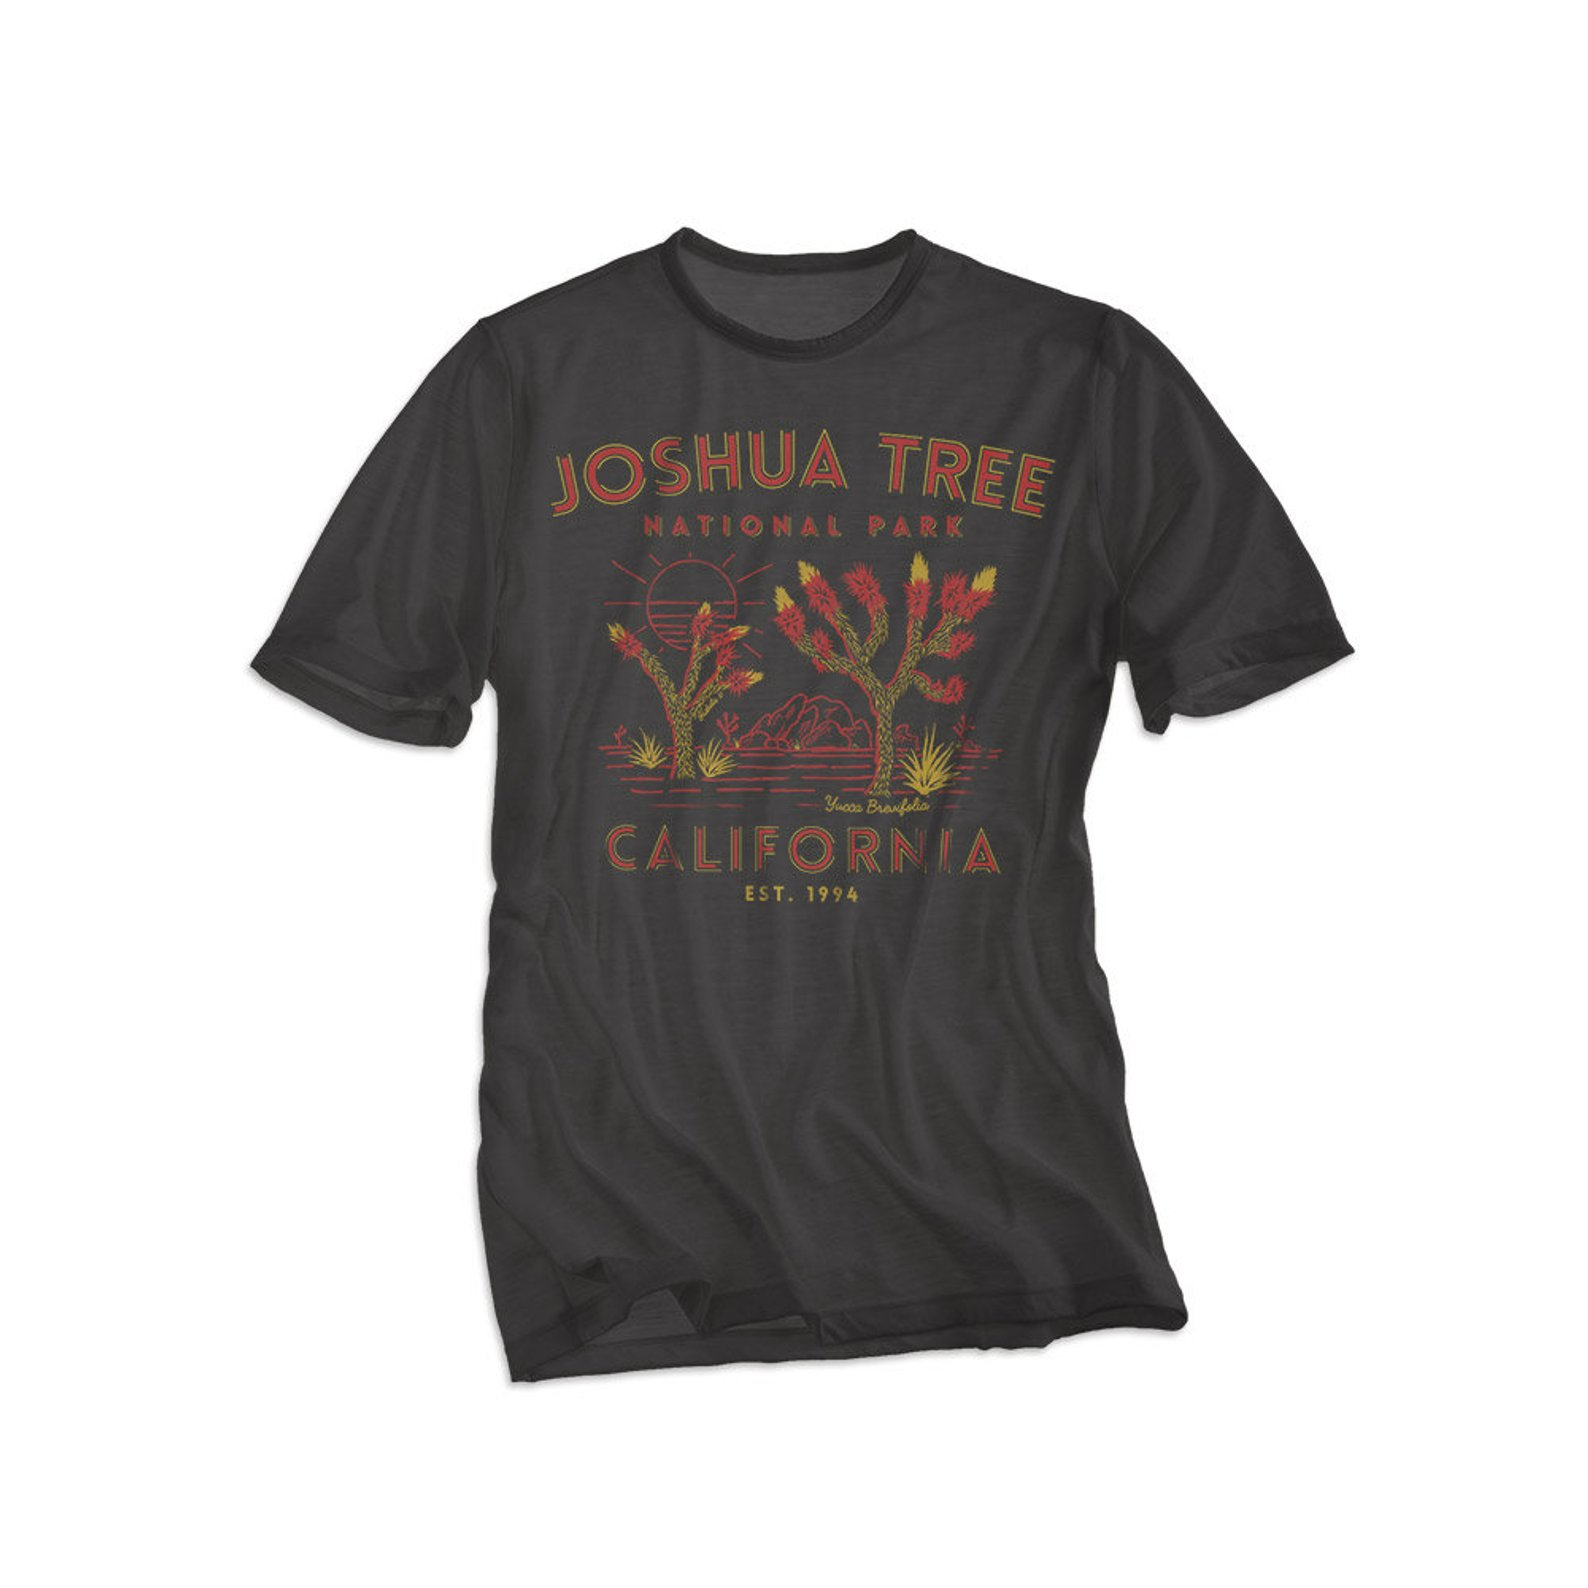 Joshua Tree National Park Shirt By Habilis Supply Co